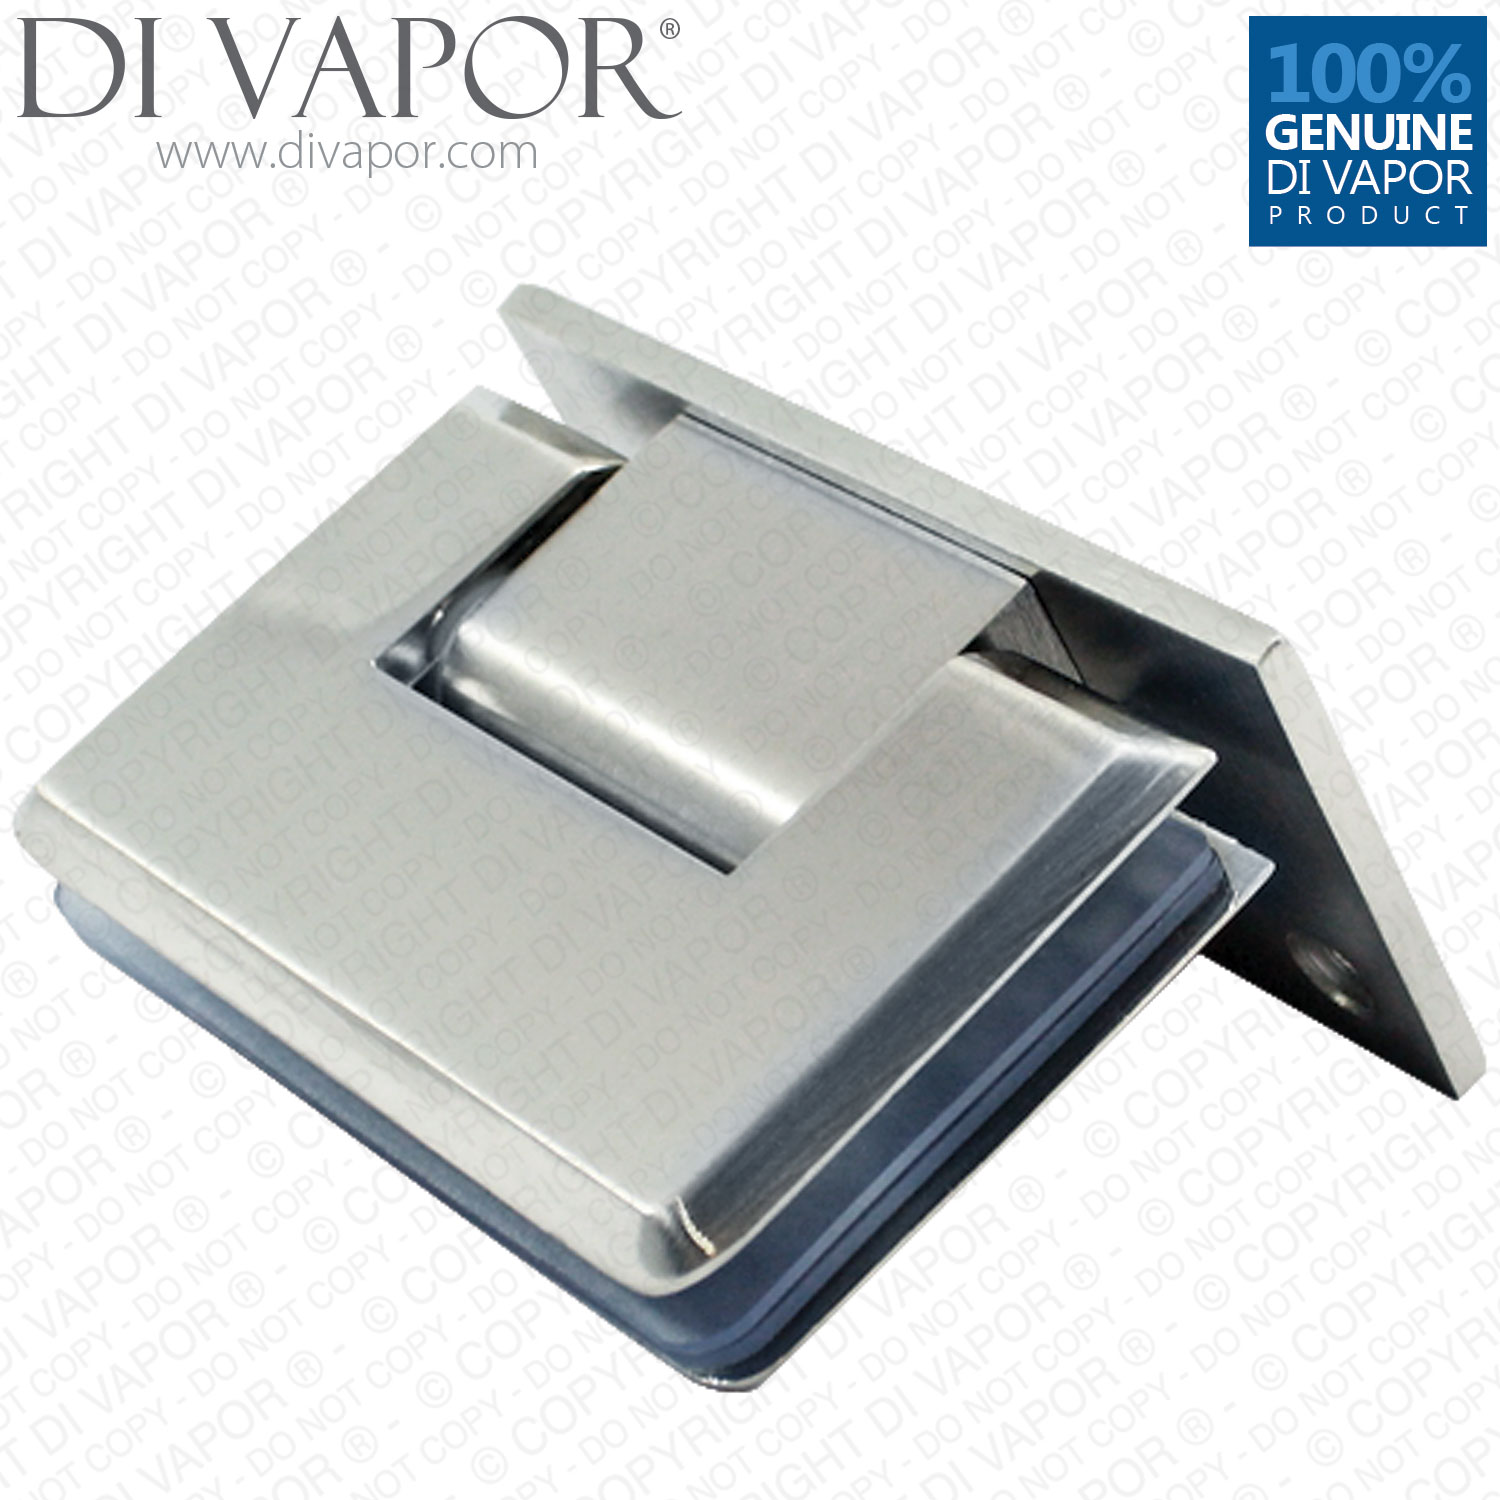 Wall Bracket Lamp Hinge : 90 Degree Glass Door Hinge Bracket Light Satin Nickel Finish Zinc Alloy Wall eBay